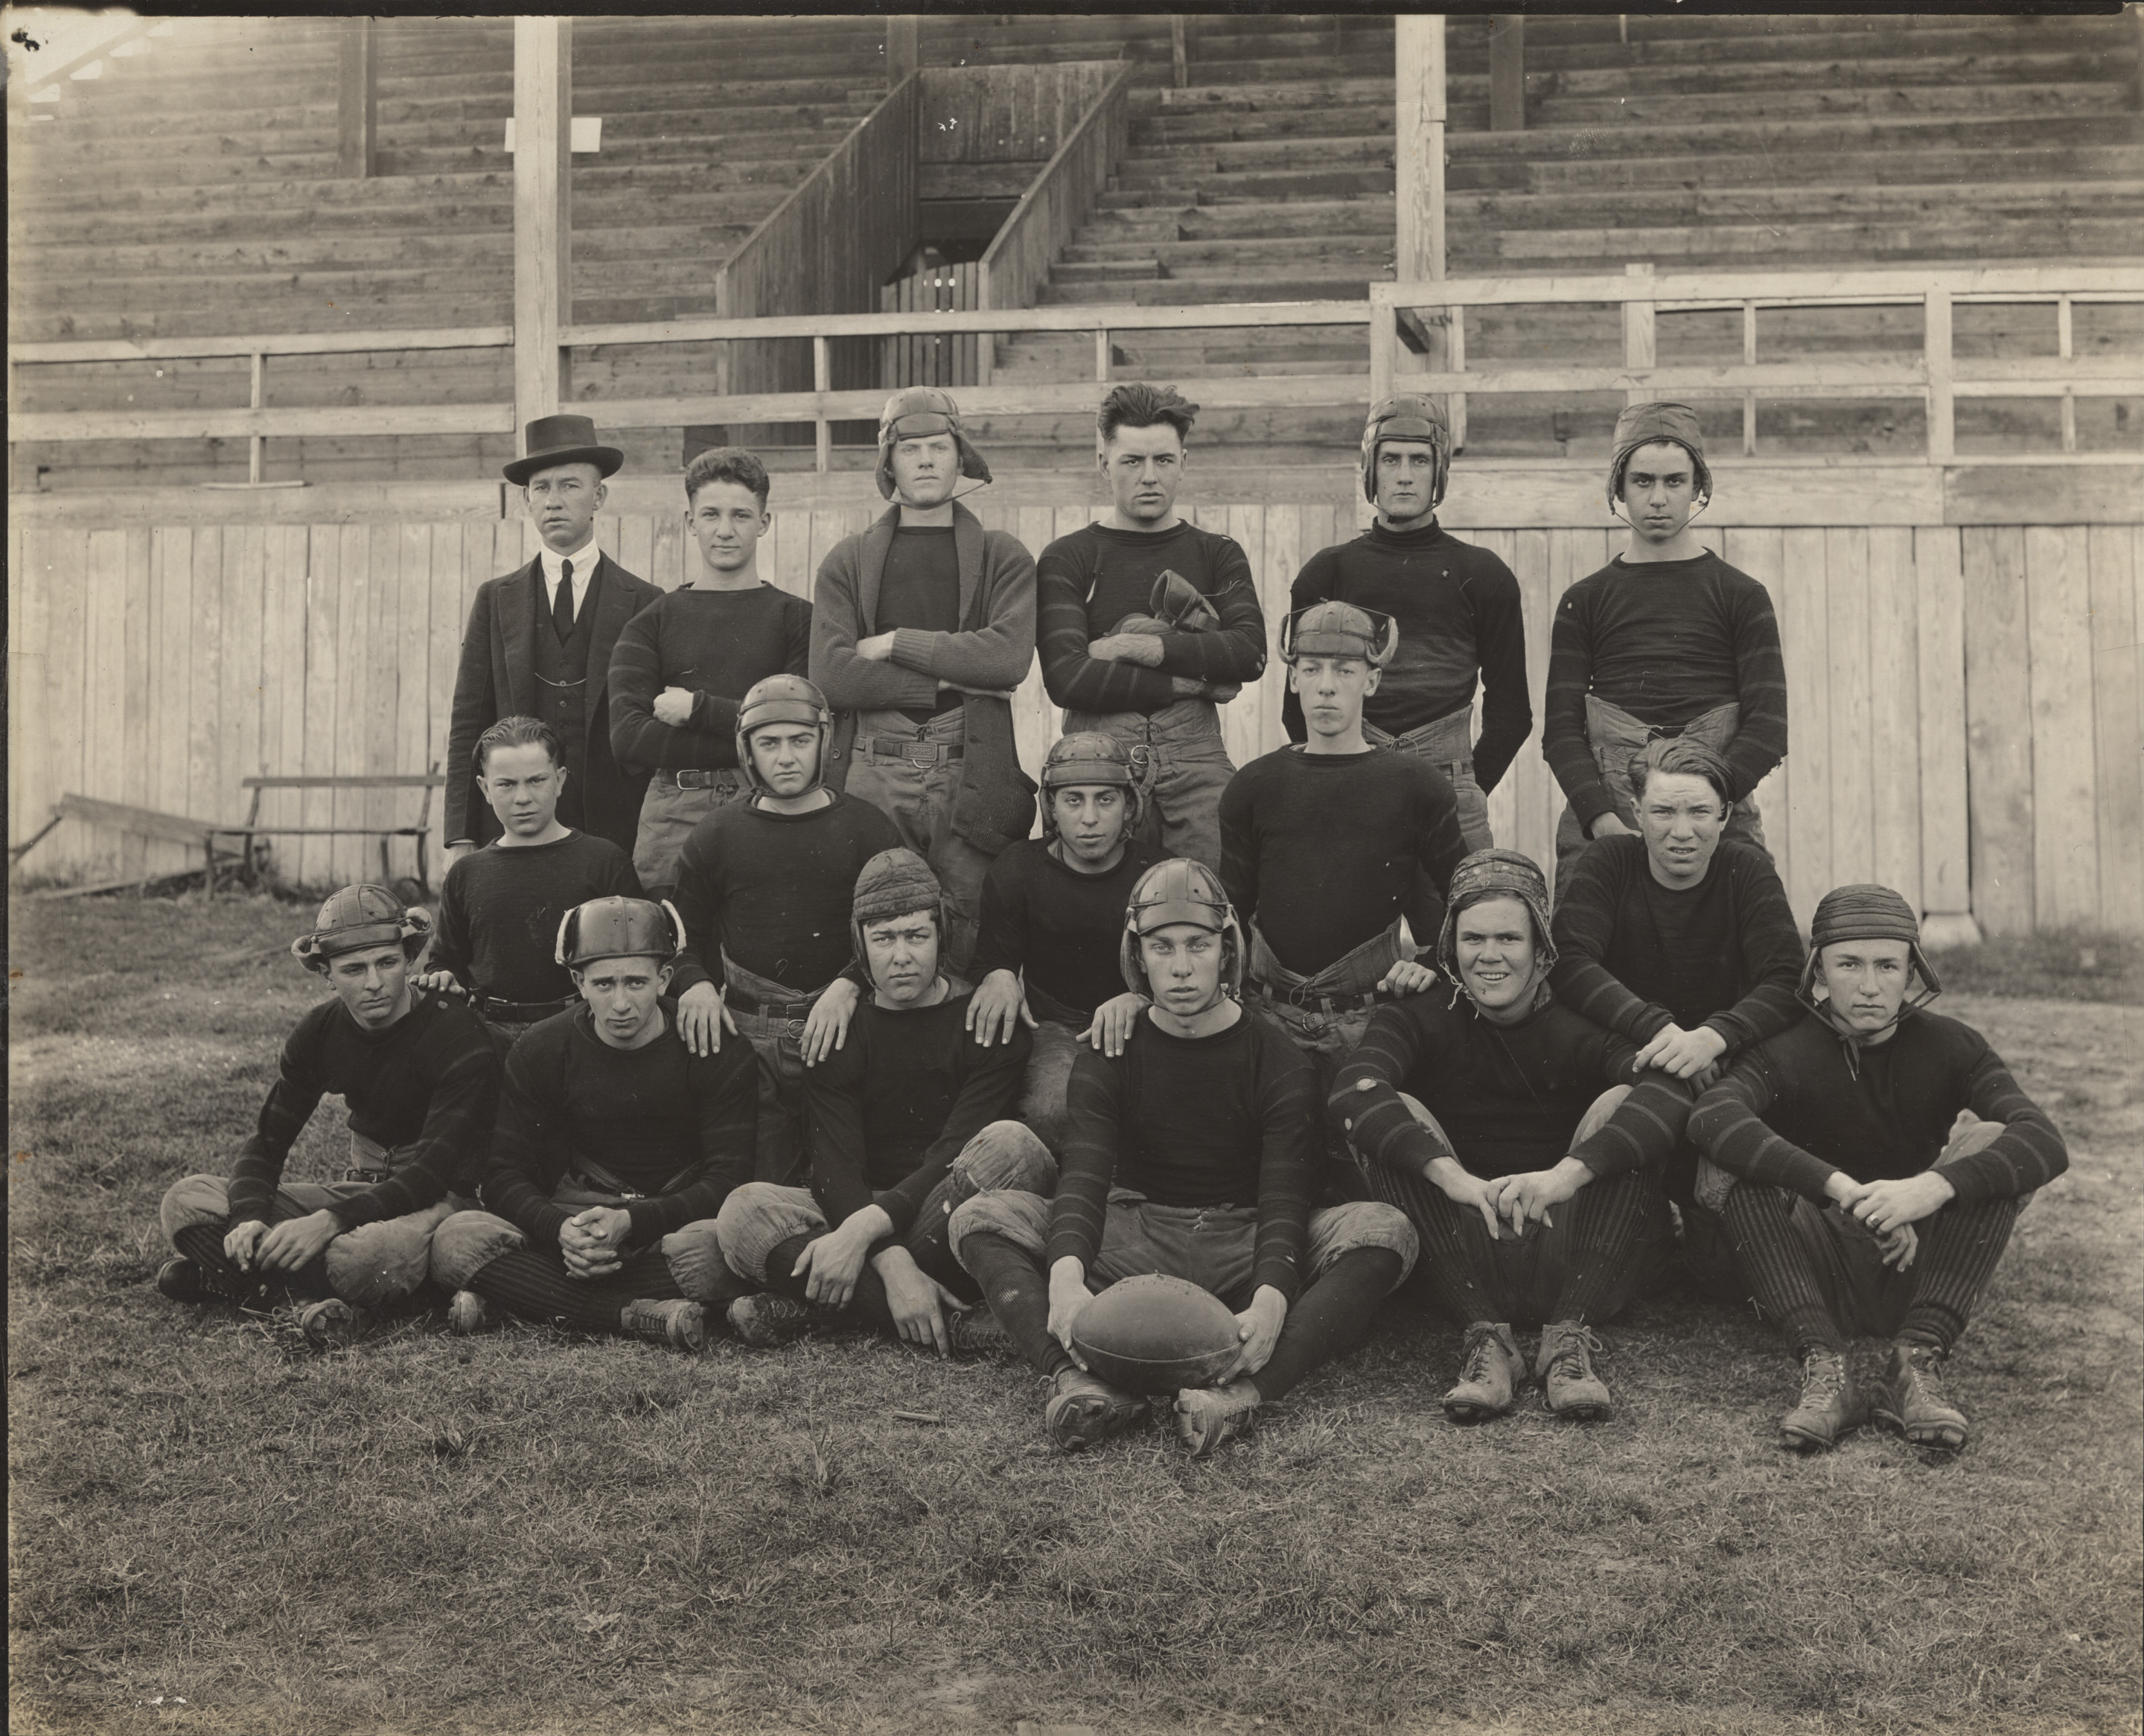 A black and white image of teenage boys in old school football uniforms. The boys pose on a field.